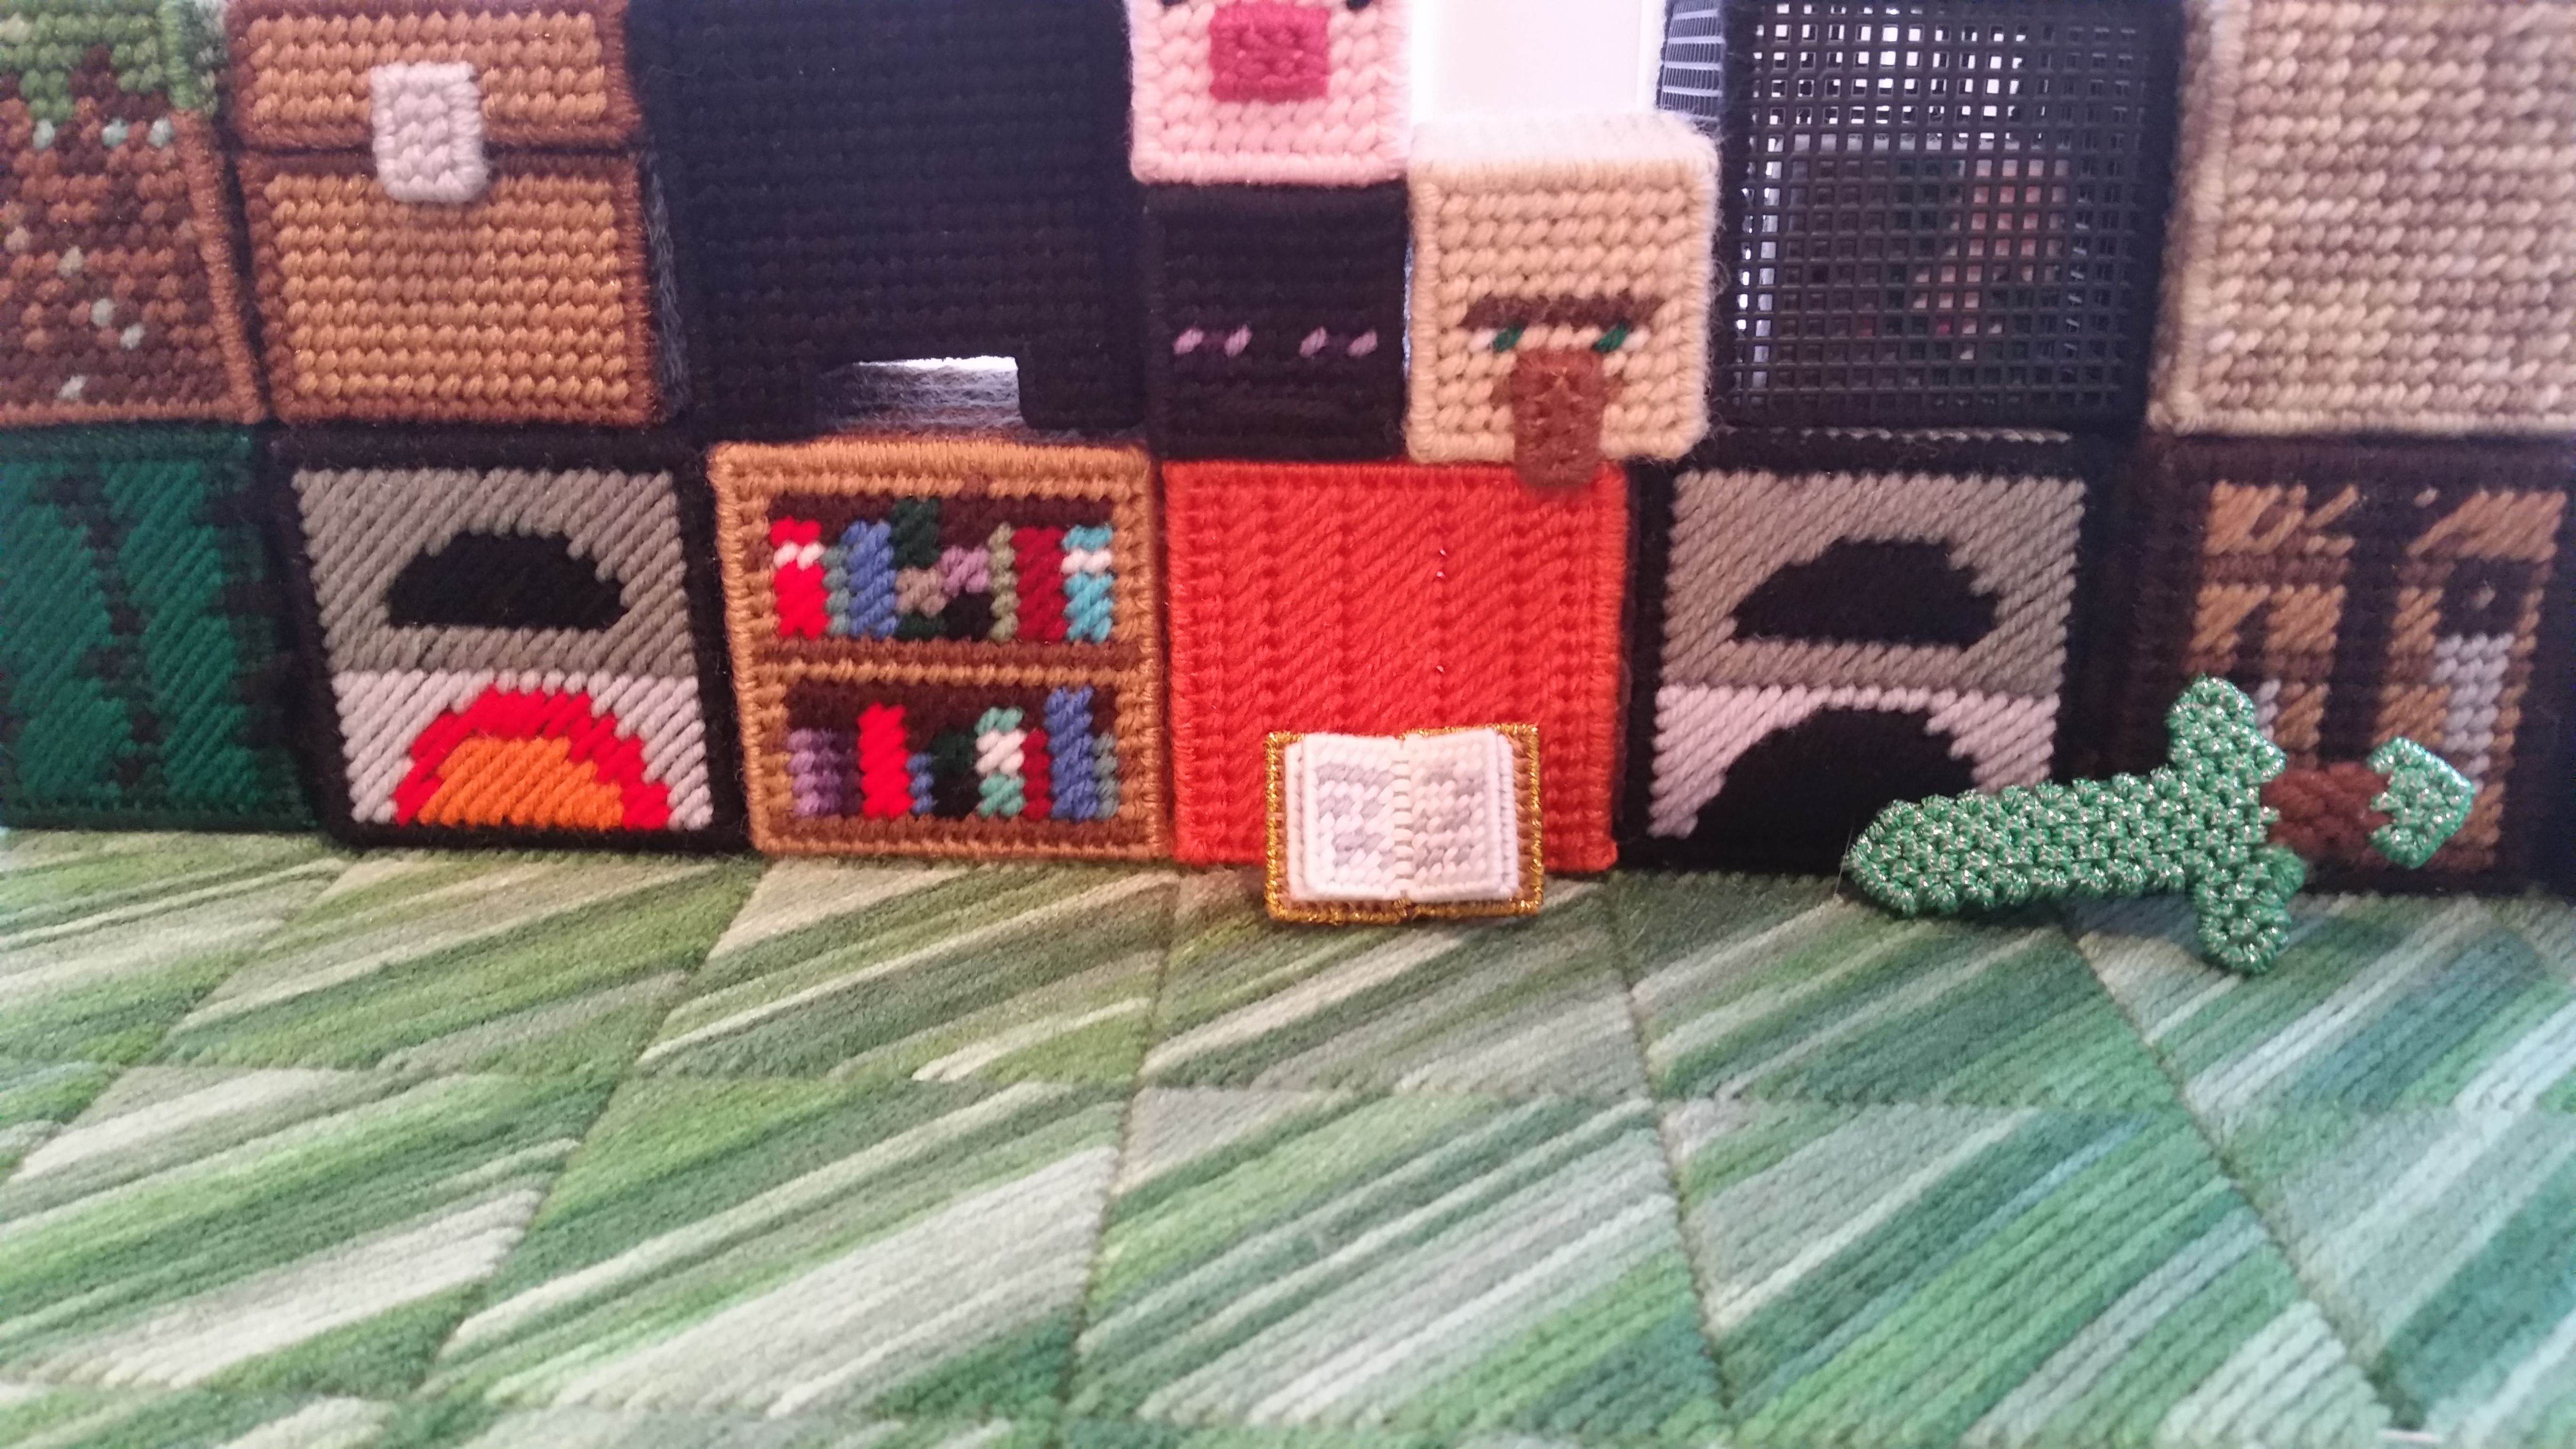 Let's Get Started On Free Minecraft Plastic Canvas Patterns! Here Is - Printable Plastic Canvas Patterns Free Online